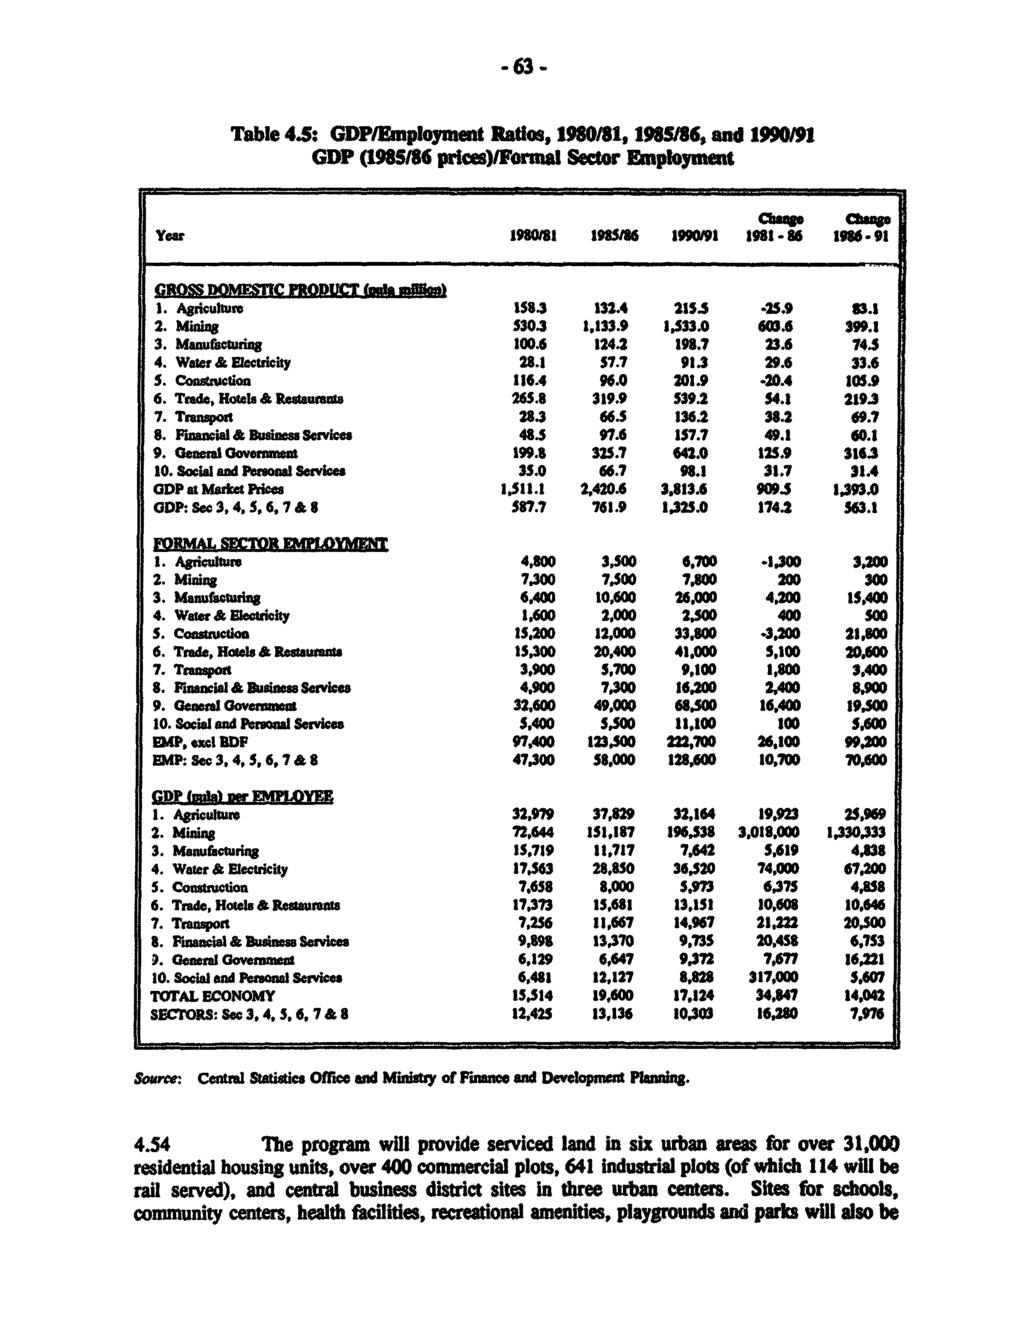 -63 - Table 4.: GDPEunployment Ratios, 1980/81, 19MI6, and 1990I/1 GDP (1985186 prices)/forial Sector Enploymt 2, Mining530.3 1_133.9 -,533.0 60'.6 399.1 3. Manurfauing 100.6 124.2 198.7 23.6 t74.s 4.